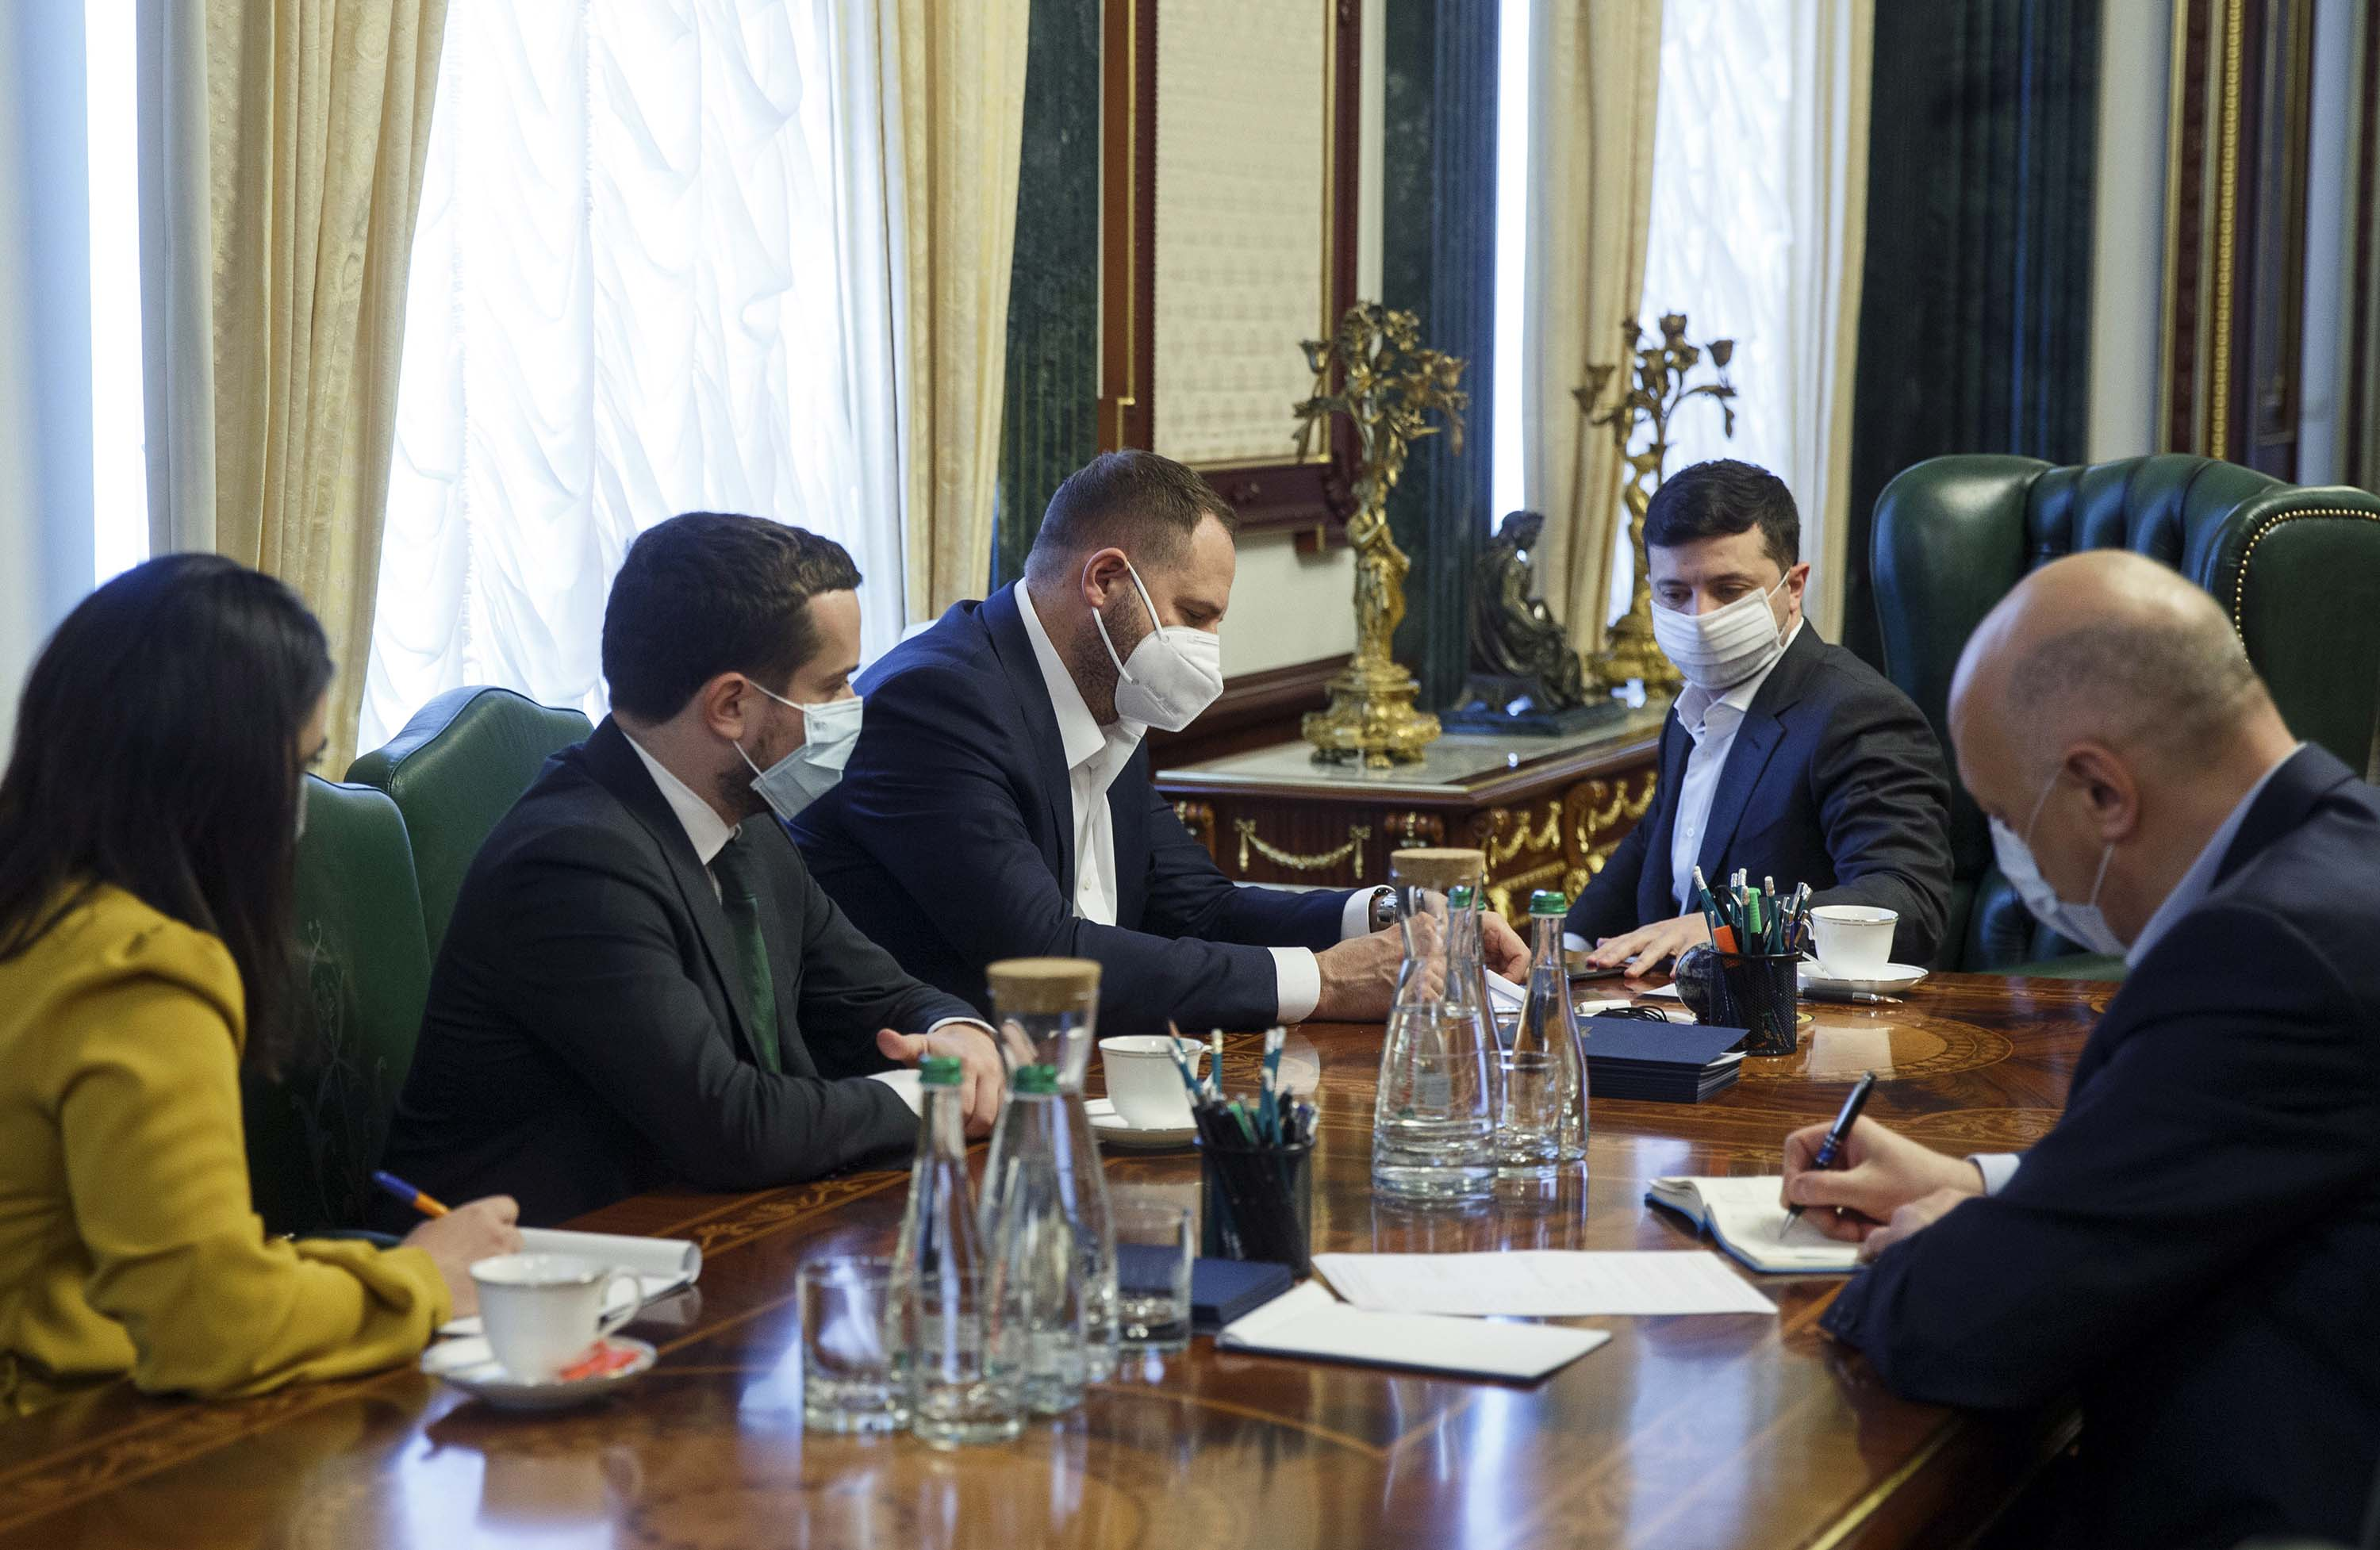 Ukrainian President Volodymyr Zelensky, second from right, is pictured during a meeting with officials at his office in Kiev, Ukraine, on April 21.